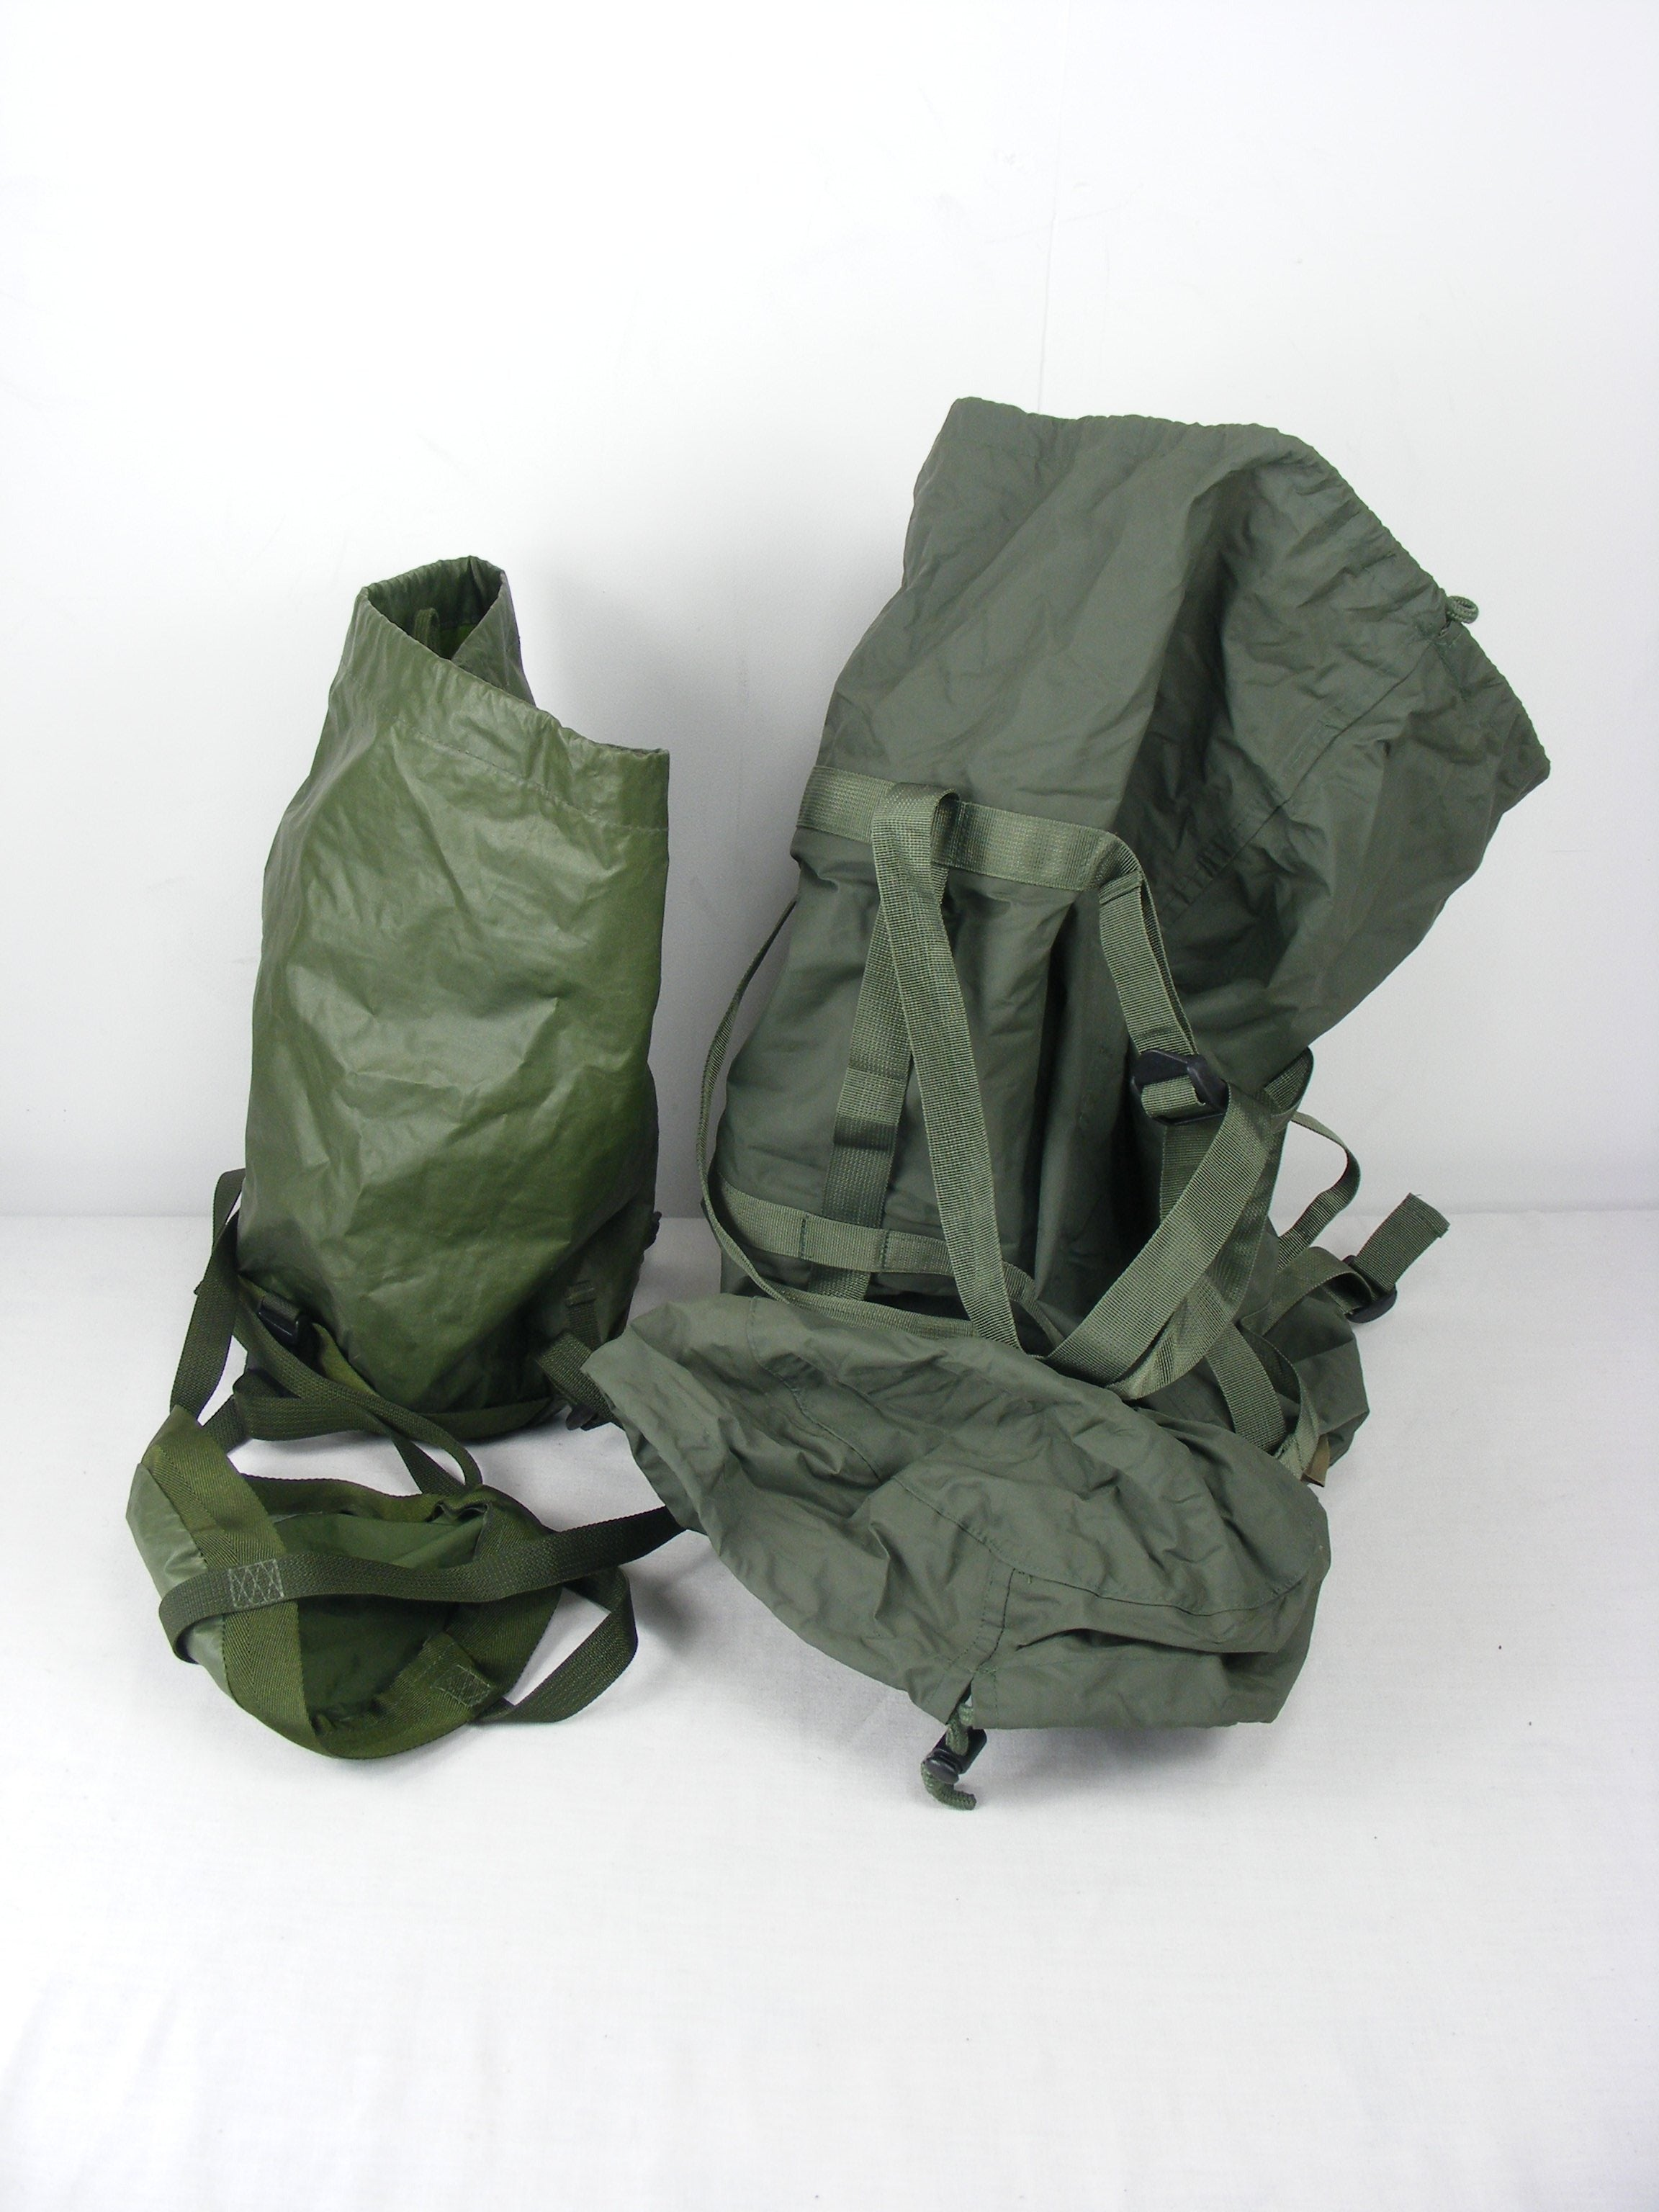 British/Dutch Olive Green Sleeping Bag Compression Sacks - various styles